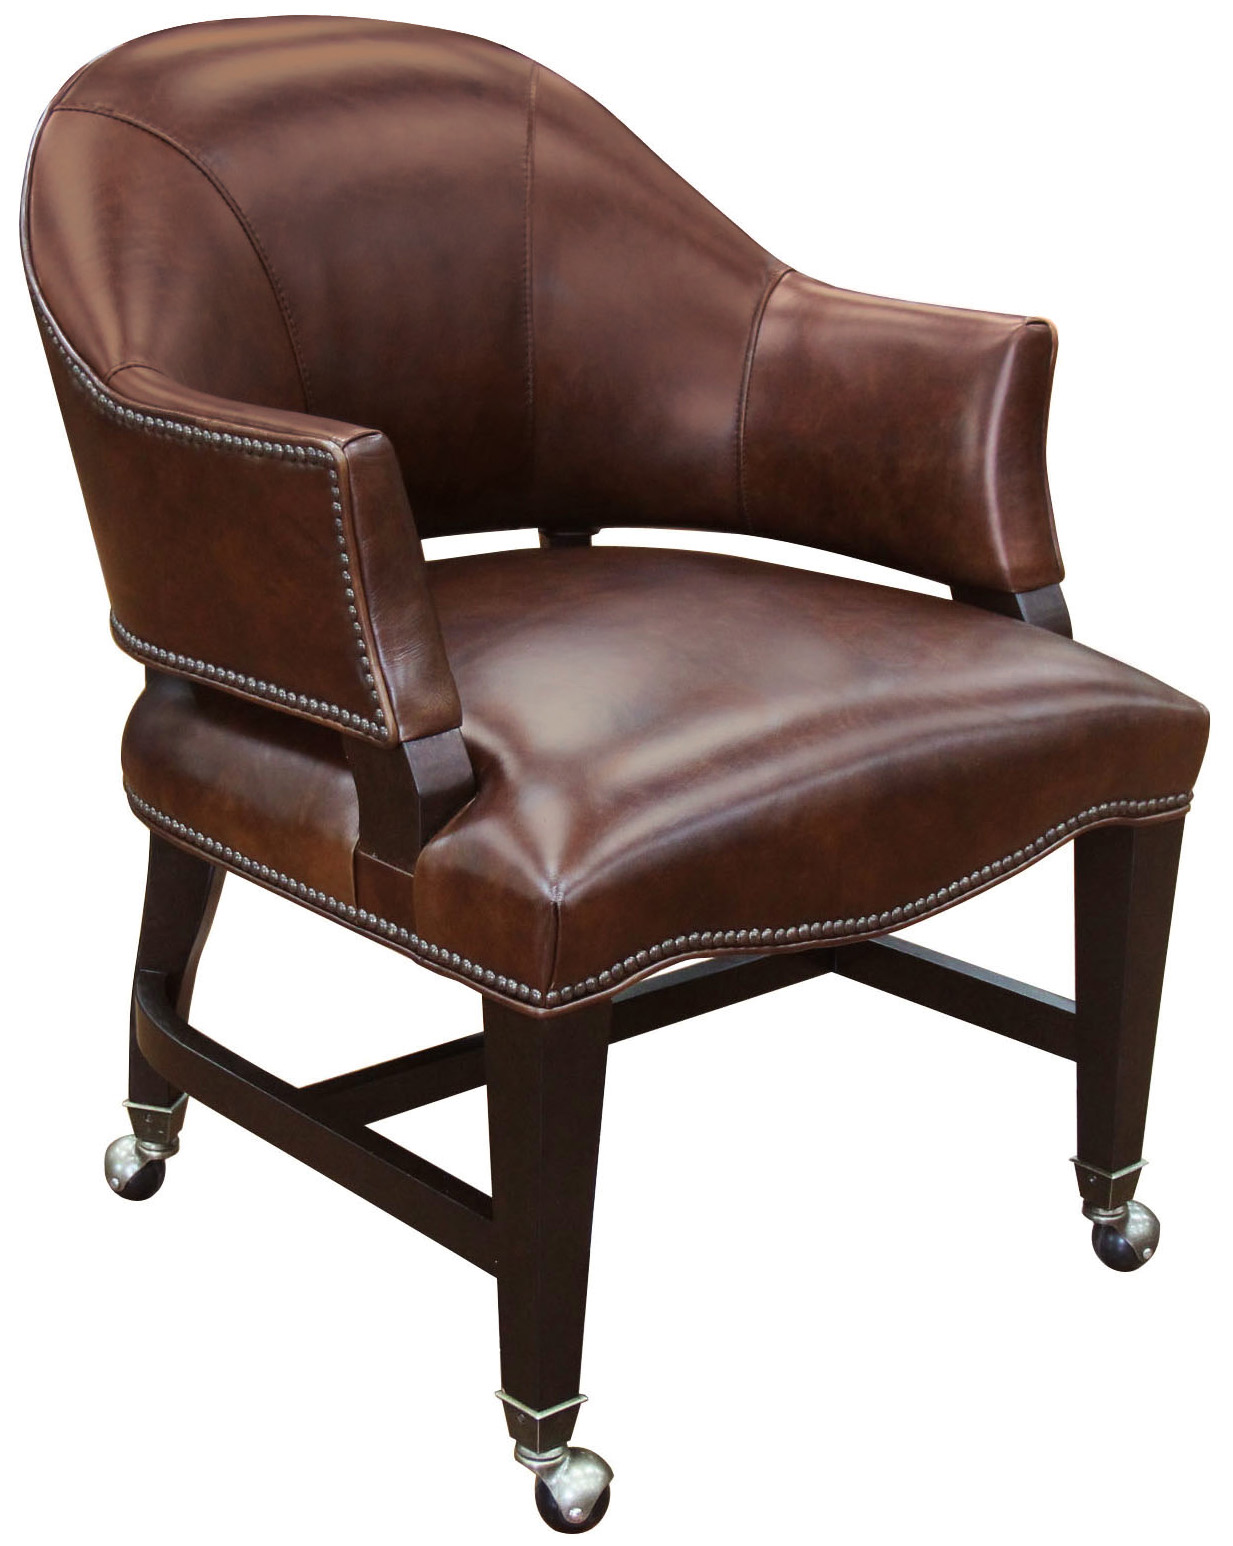 Hamilton Home Game Chairs Leather Game Chair with Swivel